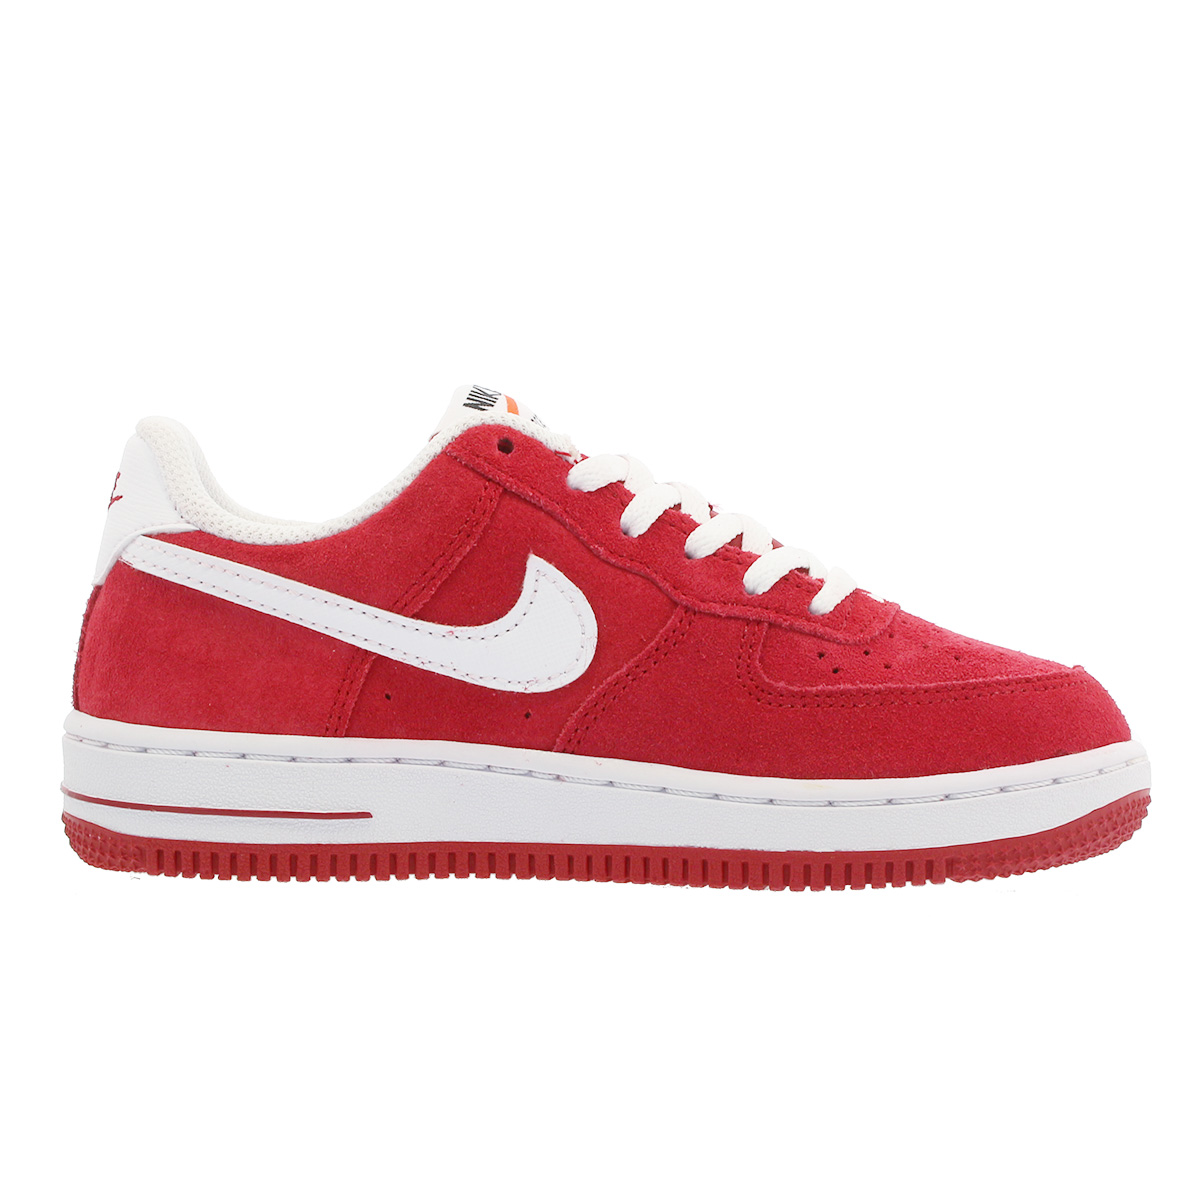 2391352b908 ... good nike air force 1 ps nike air force 1 ps gym red white 596729 610